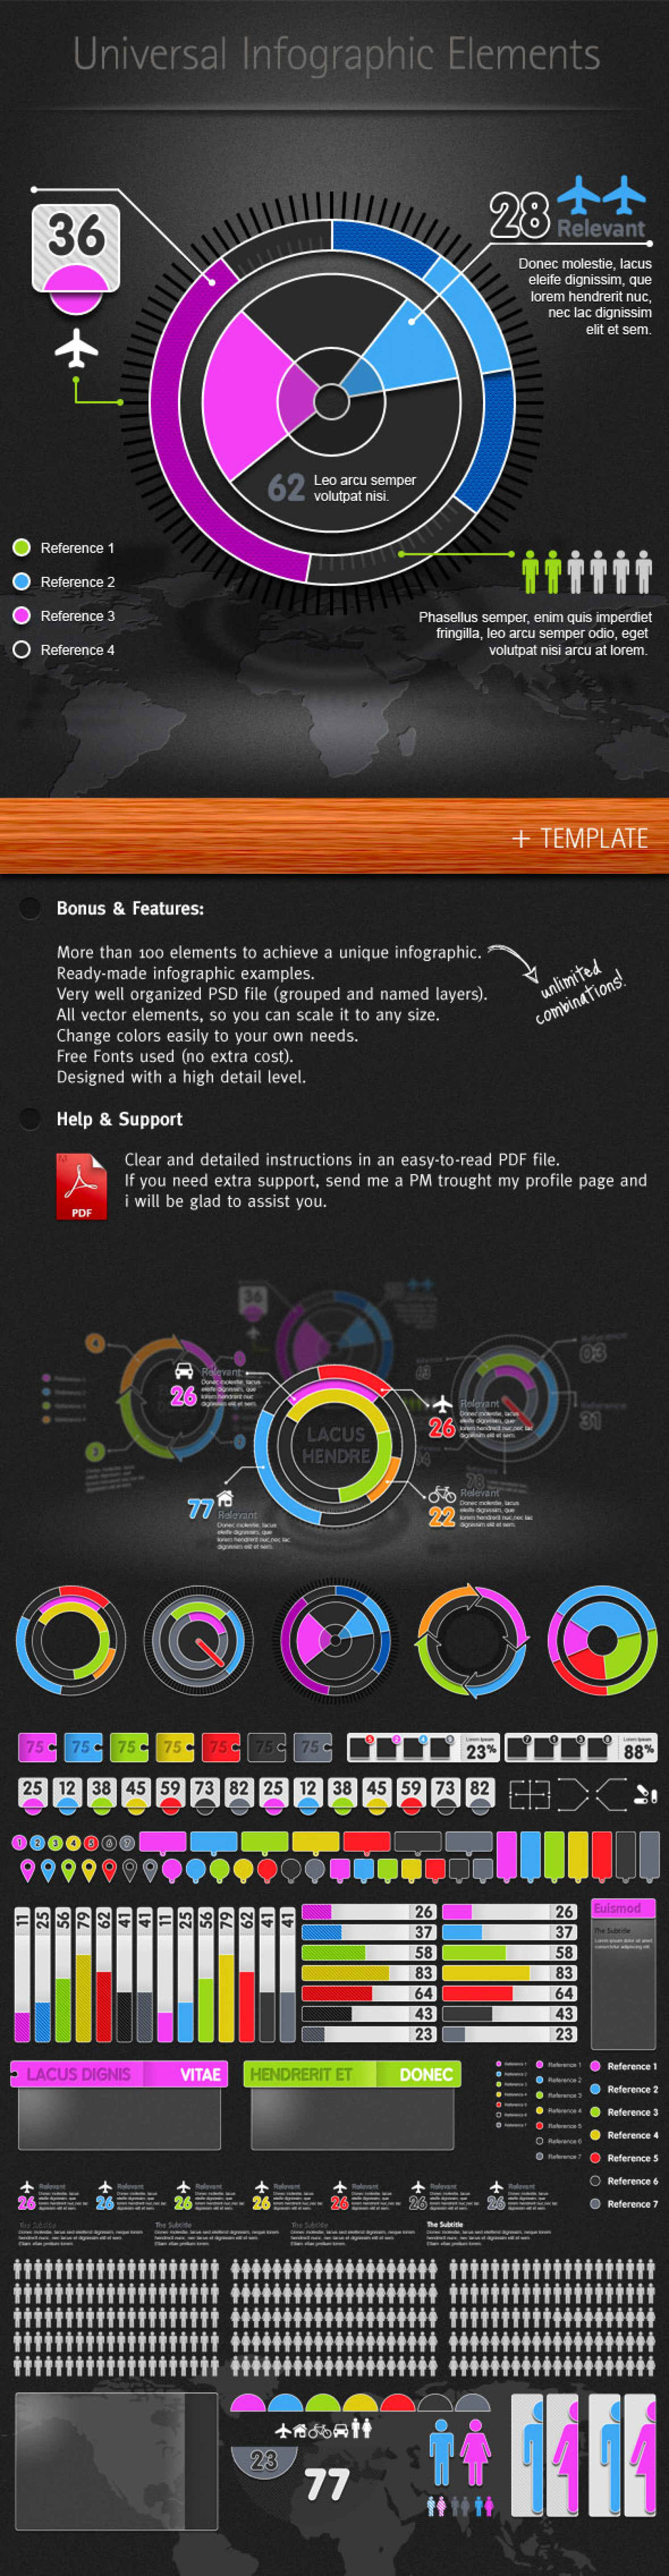 Infographic Elements Infographic